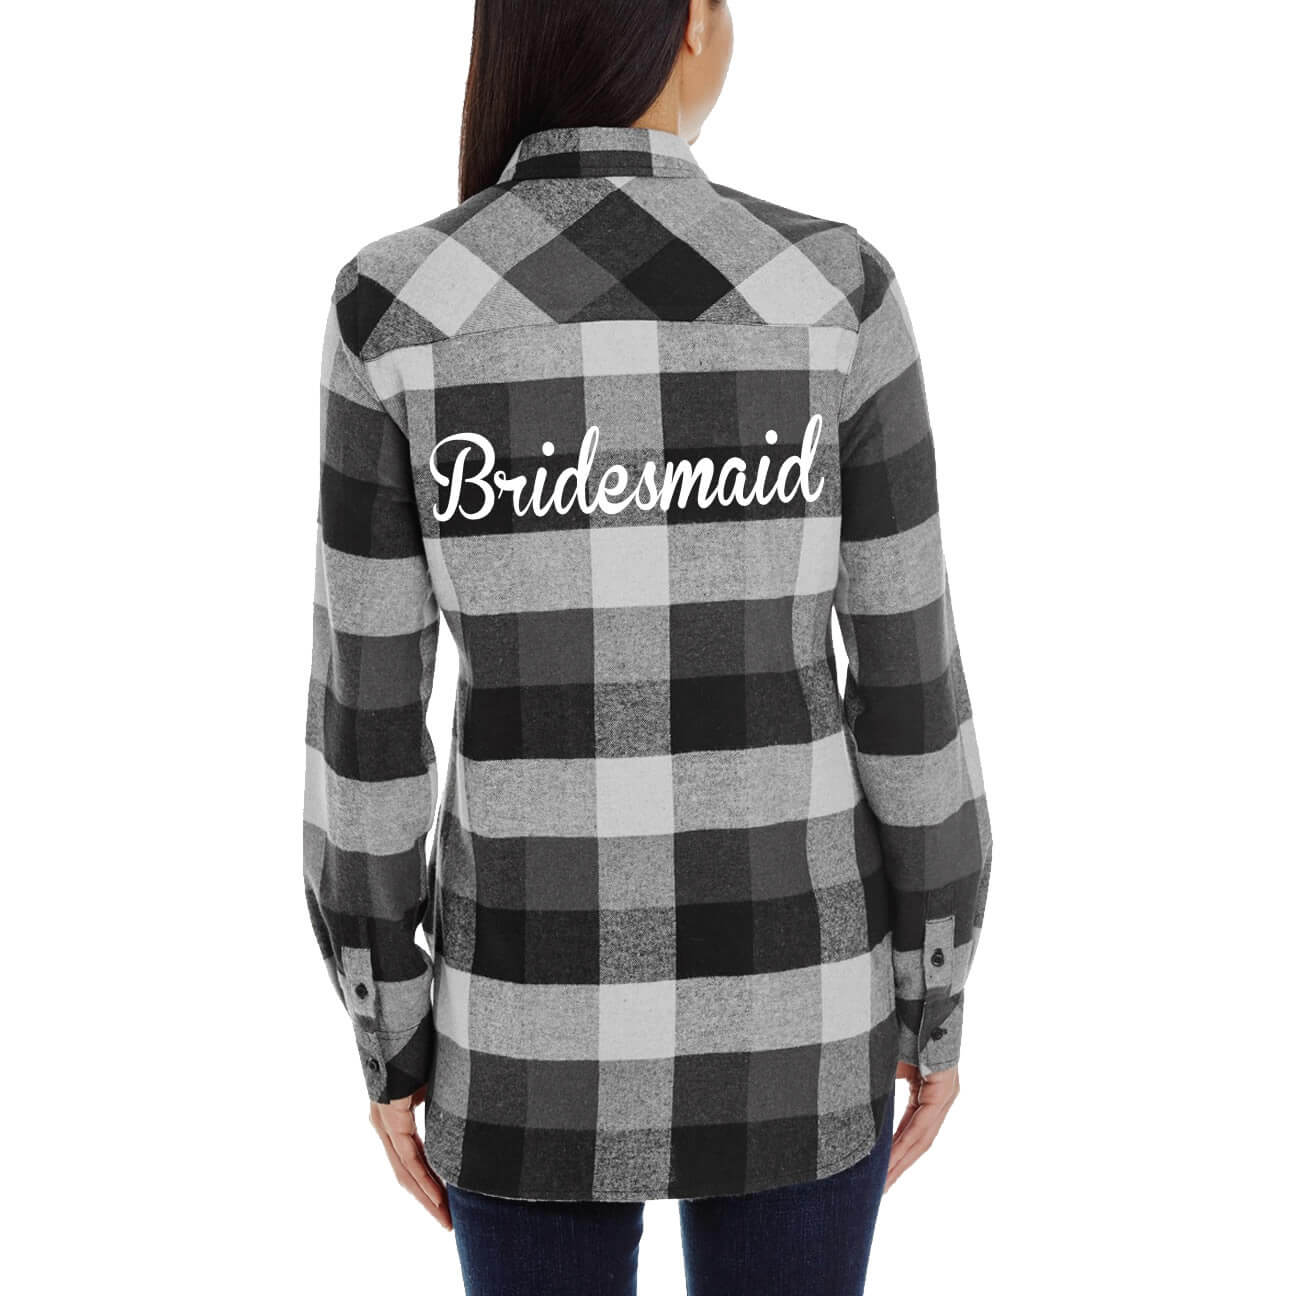 design your own bridesmaid flannel shirt personalized brides